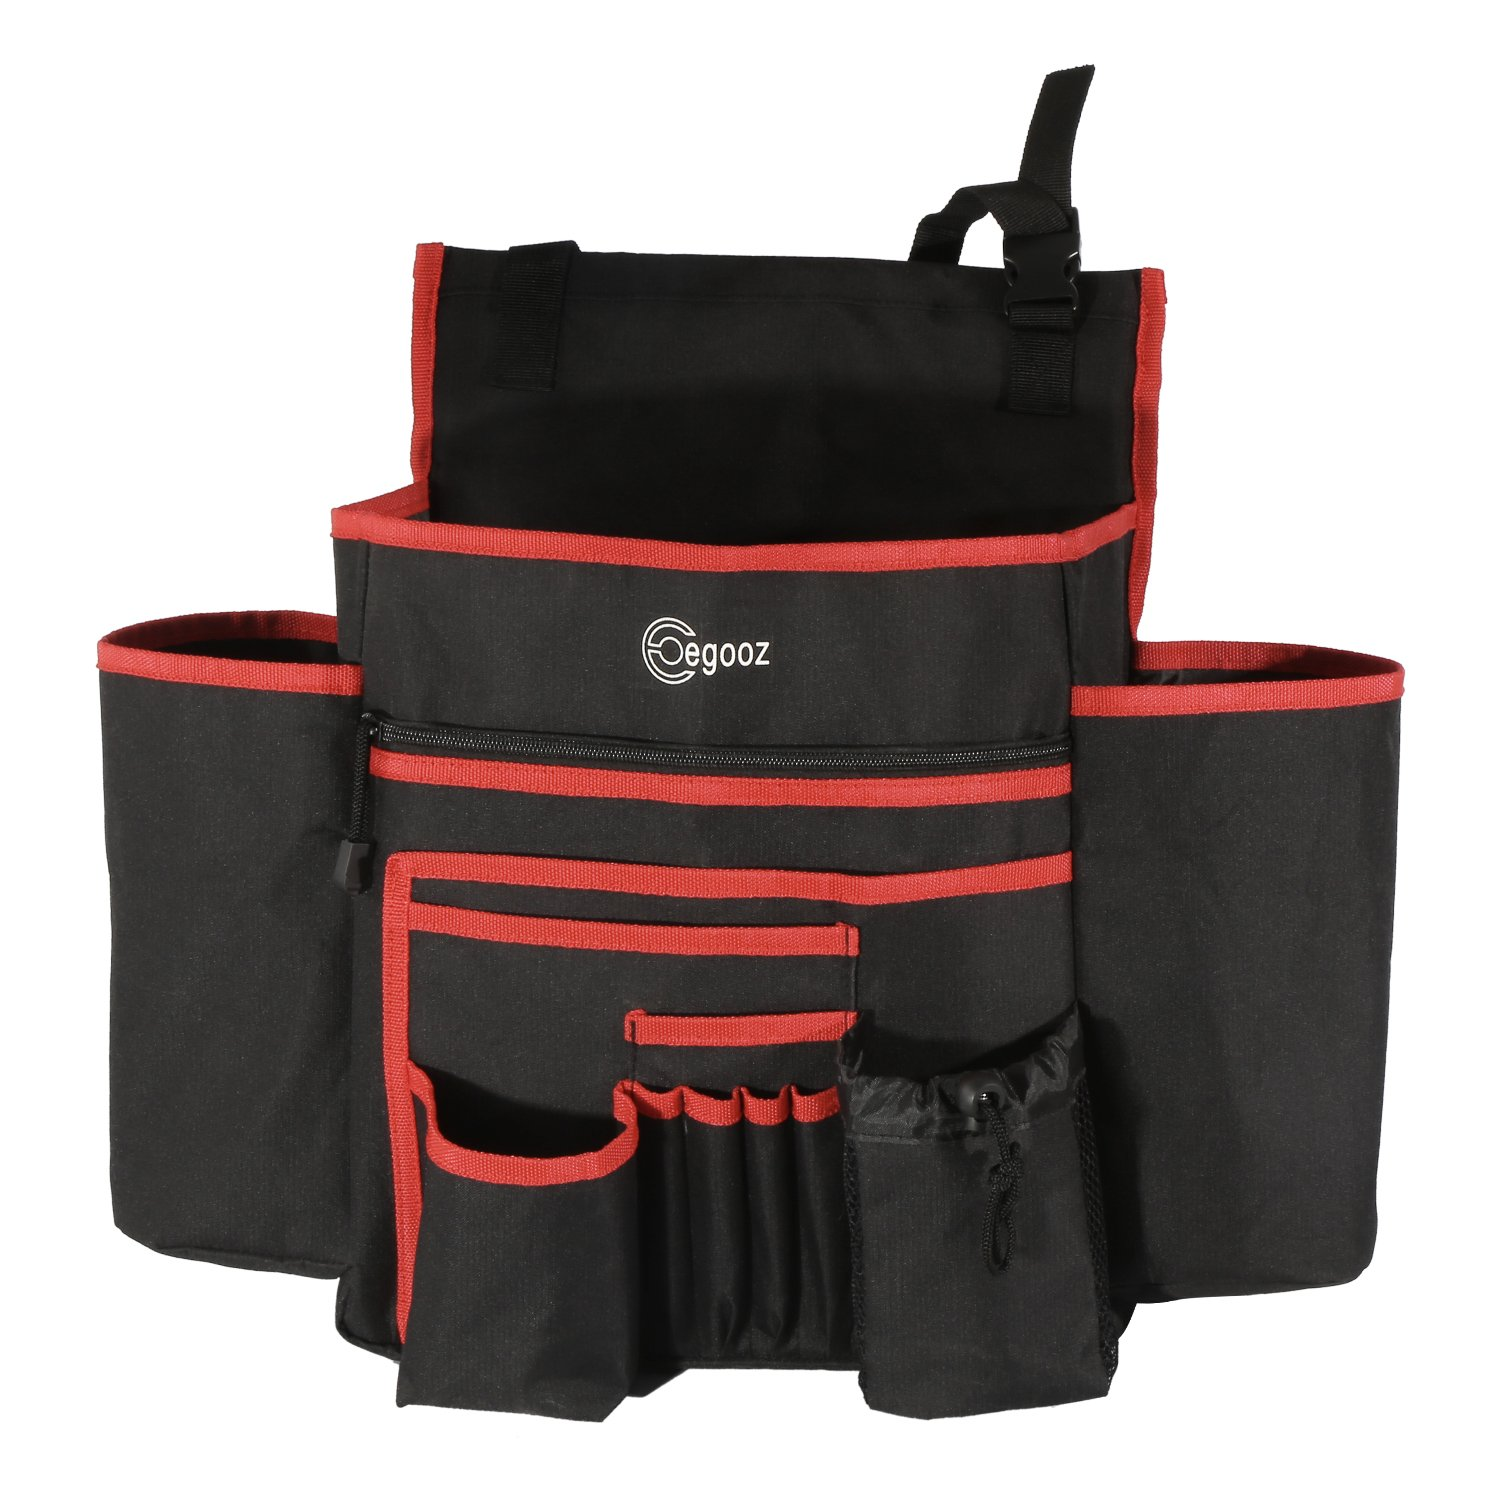 9 Storage Pockets Egooz Techology Enterprise Limited Easy Reach Heavy Duty Perfect Traveling Office for Law Enforcement and Business Commuters Egooz Car Front Seat Organizer with Large Capacity